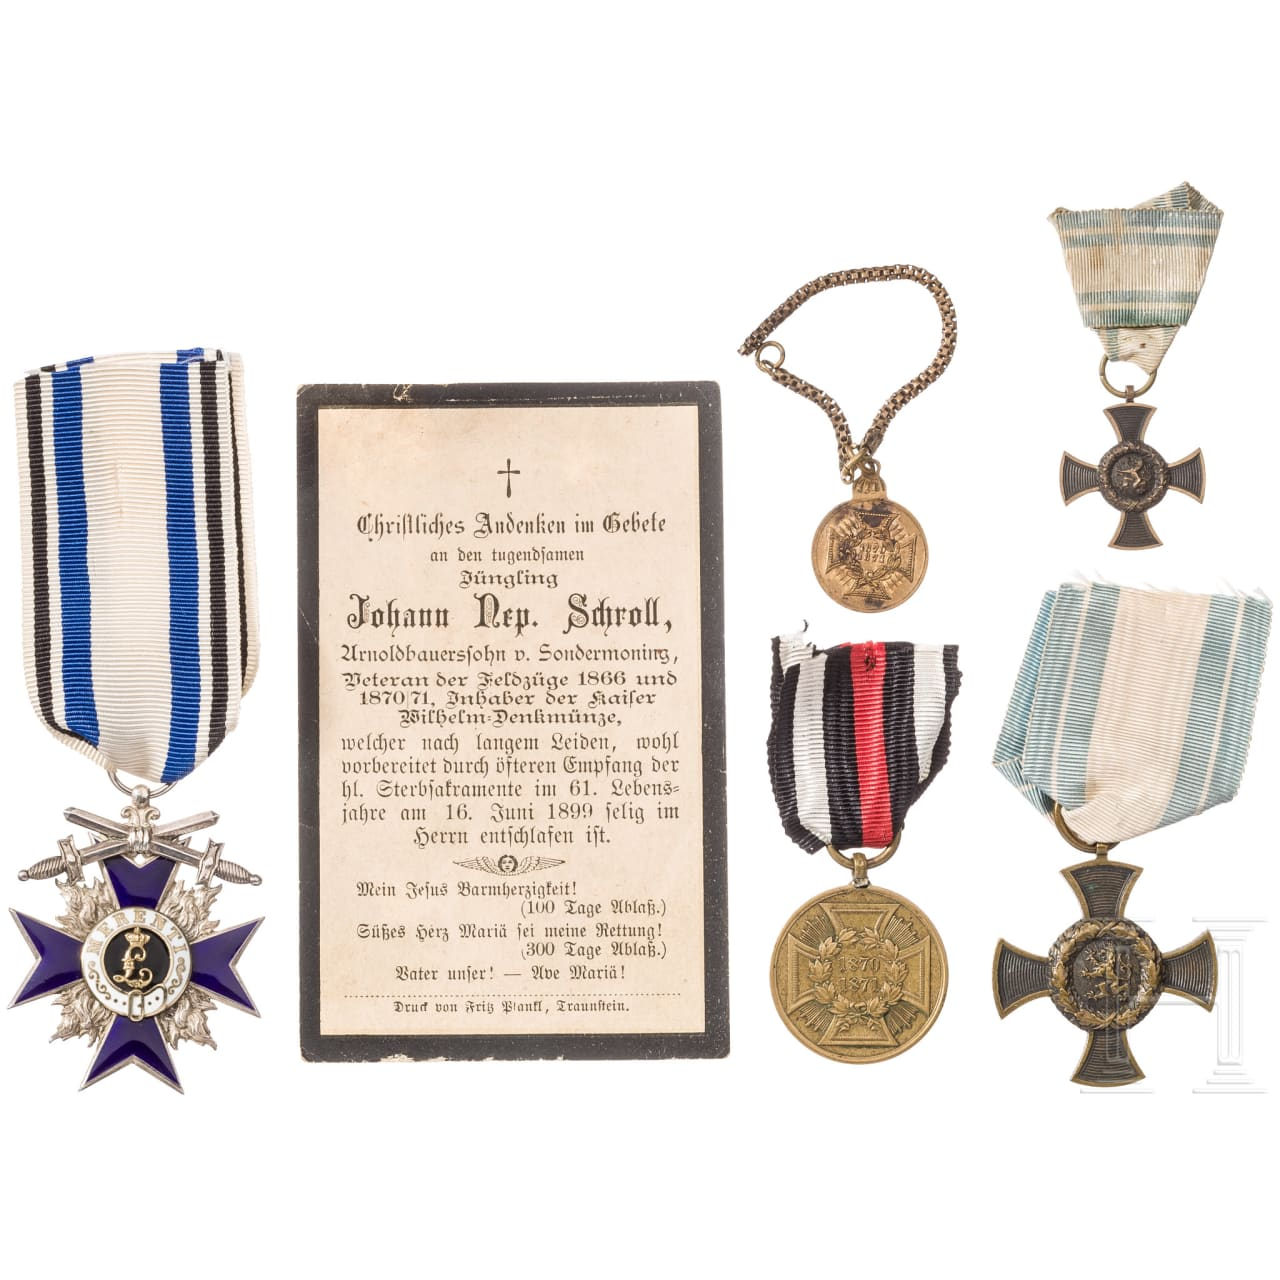 Military Merit Order 4th class with swords, estate of a veteran of the wars 1866, 1870